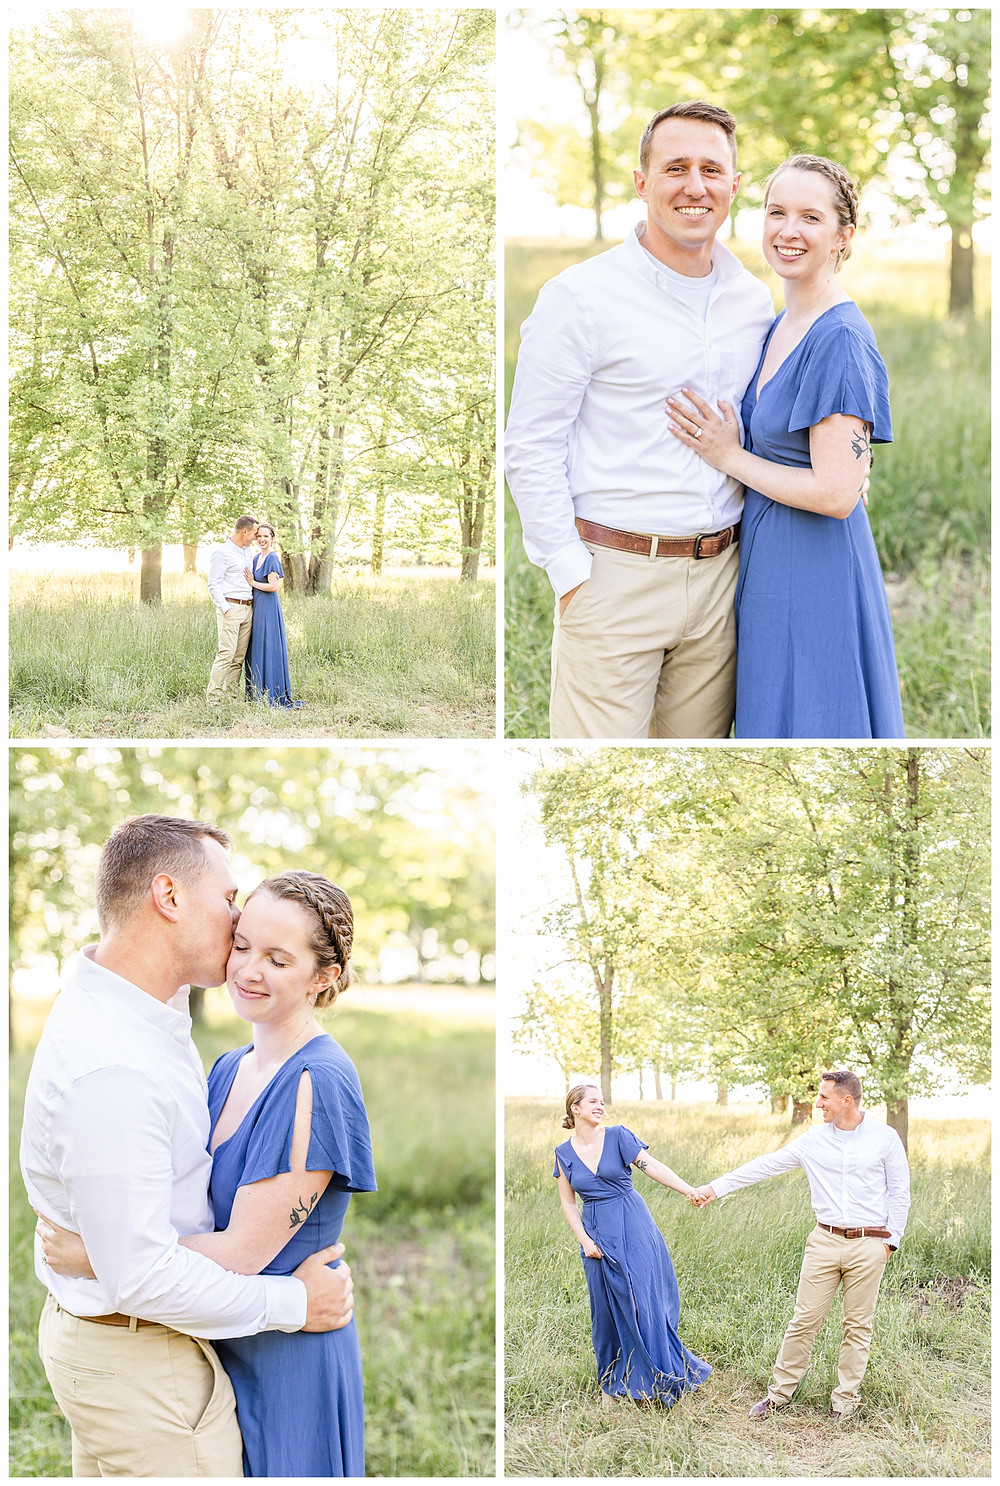 Josh and Andrea wedding photography husband and wife photographer team michigan pictures south haven engagement pictures session fields and woods photo shoot fiance kissing laughing standing